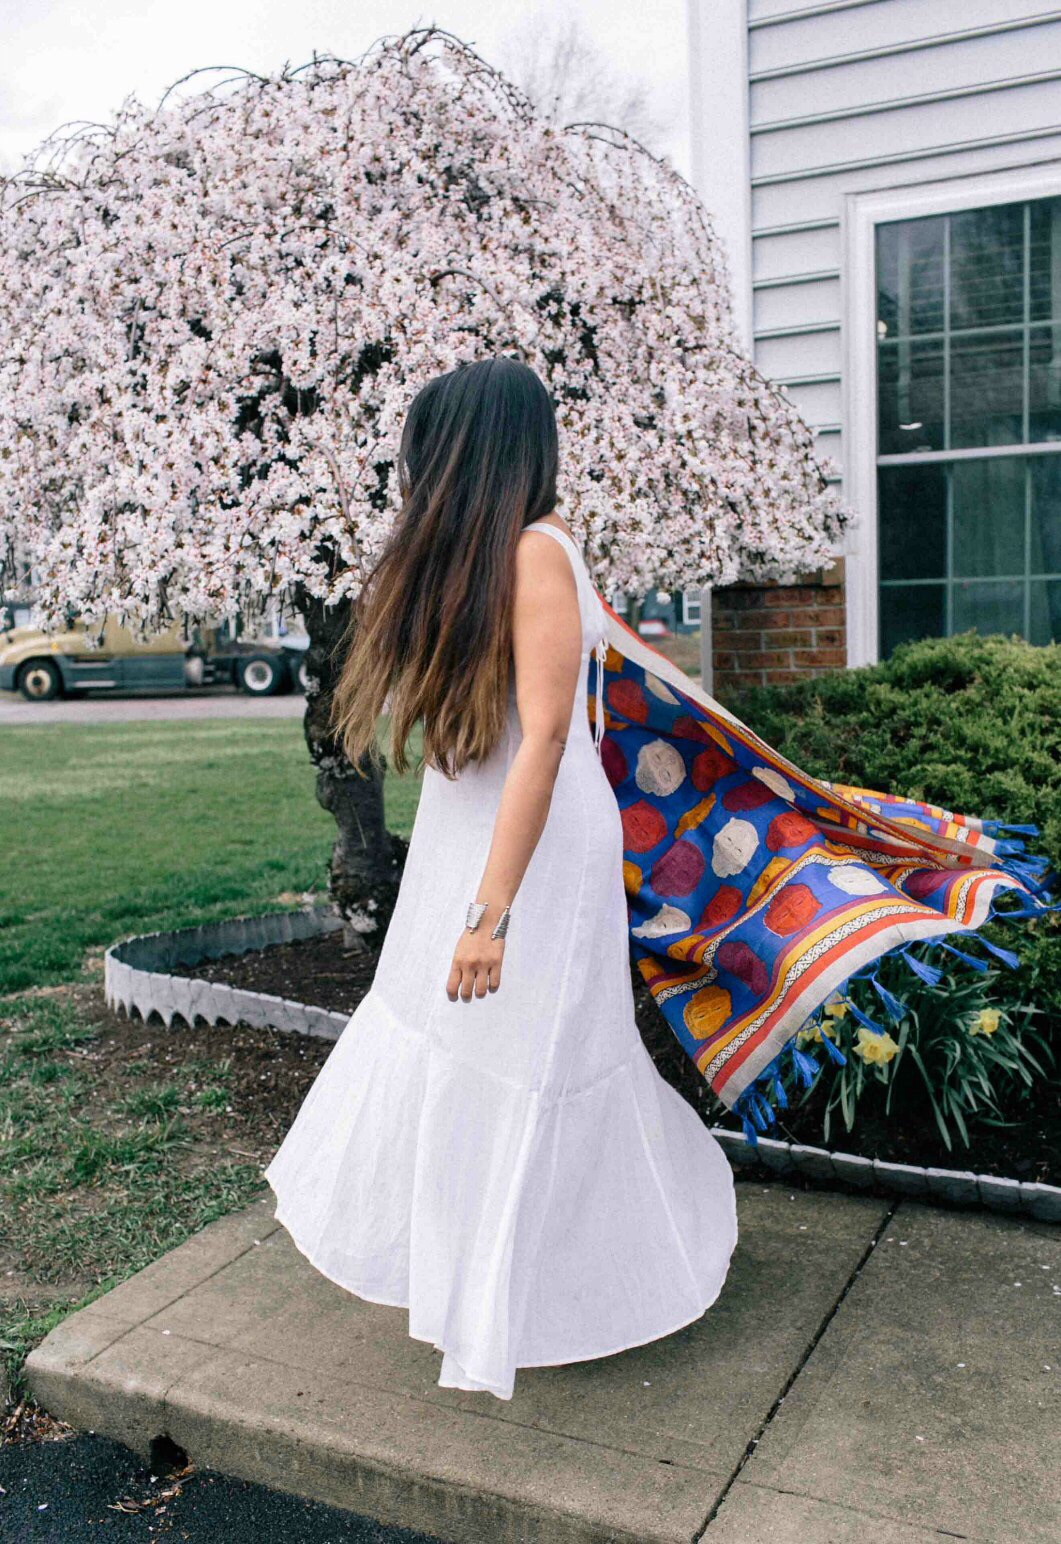 Modest Fashion and lifestyle Blog dreaming loud wearing Anthropologie white maxi dress - Indo-Western Spring Outfit featured by popular modest fashion blogger, Dreaming Loud